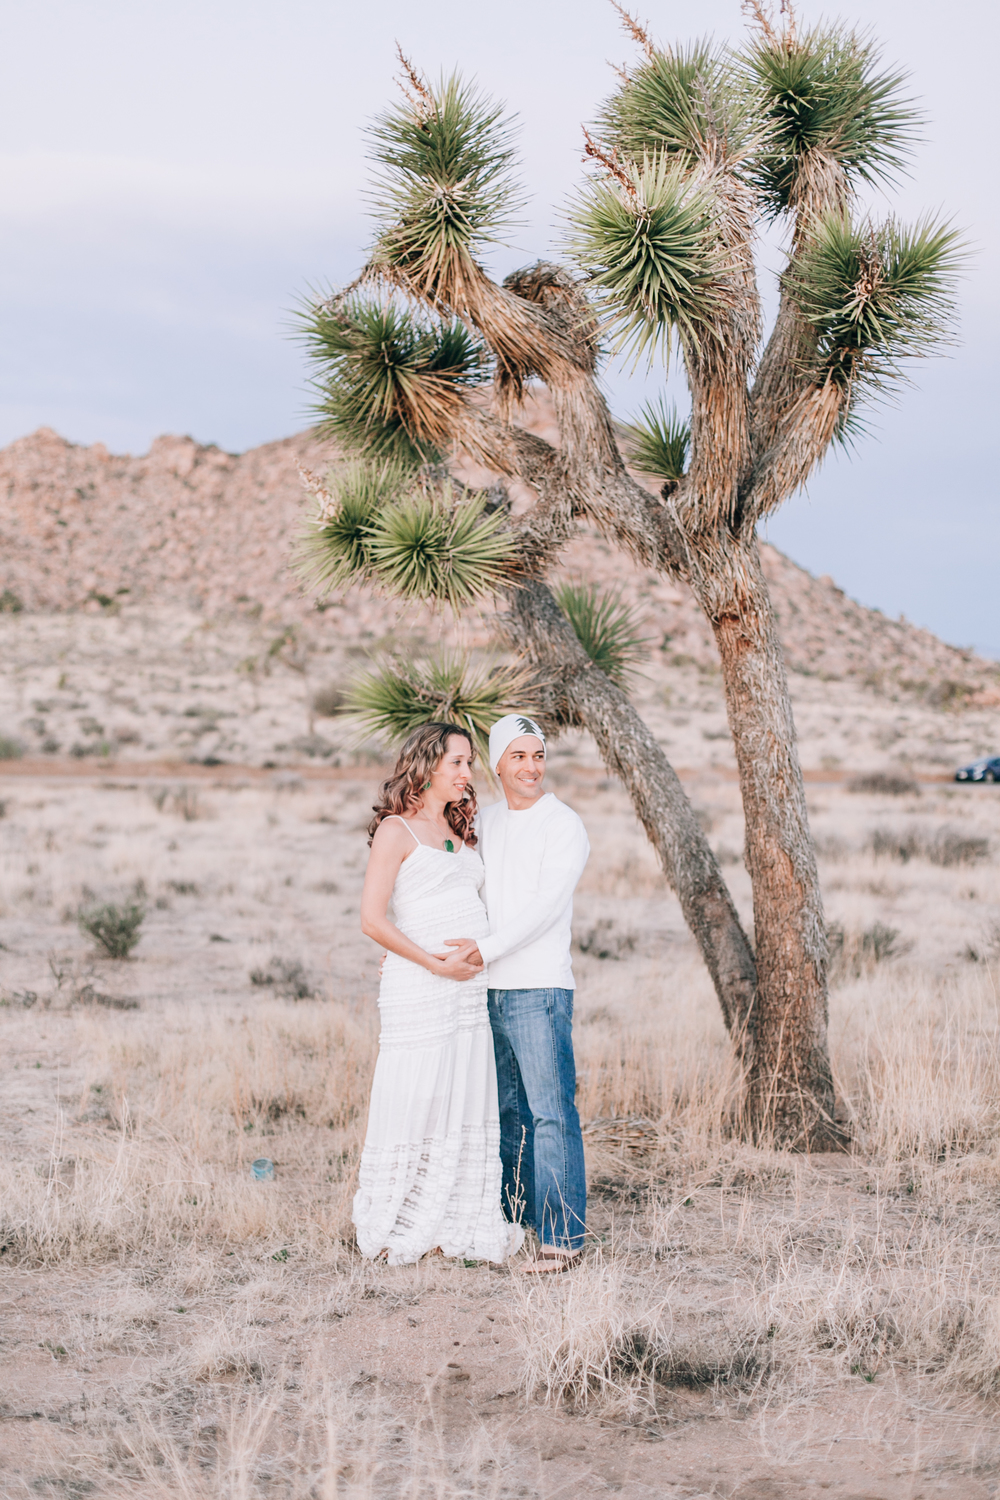 KaraNixonWeddings-JoshuaTree-Maternity-5.jpg